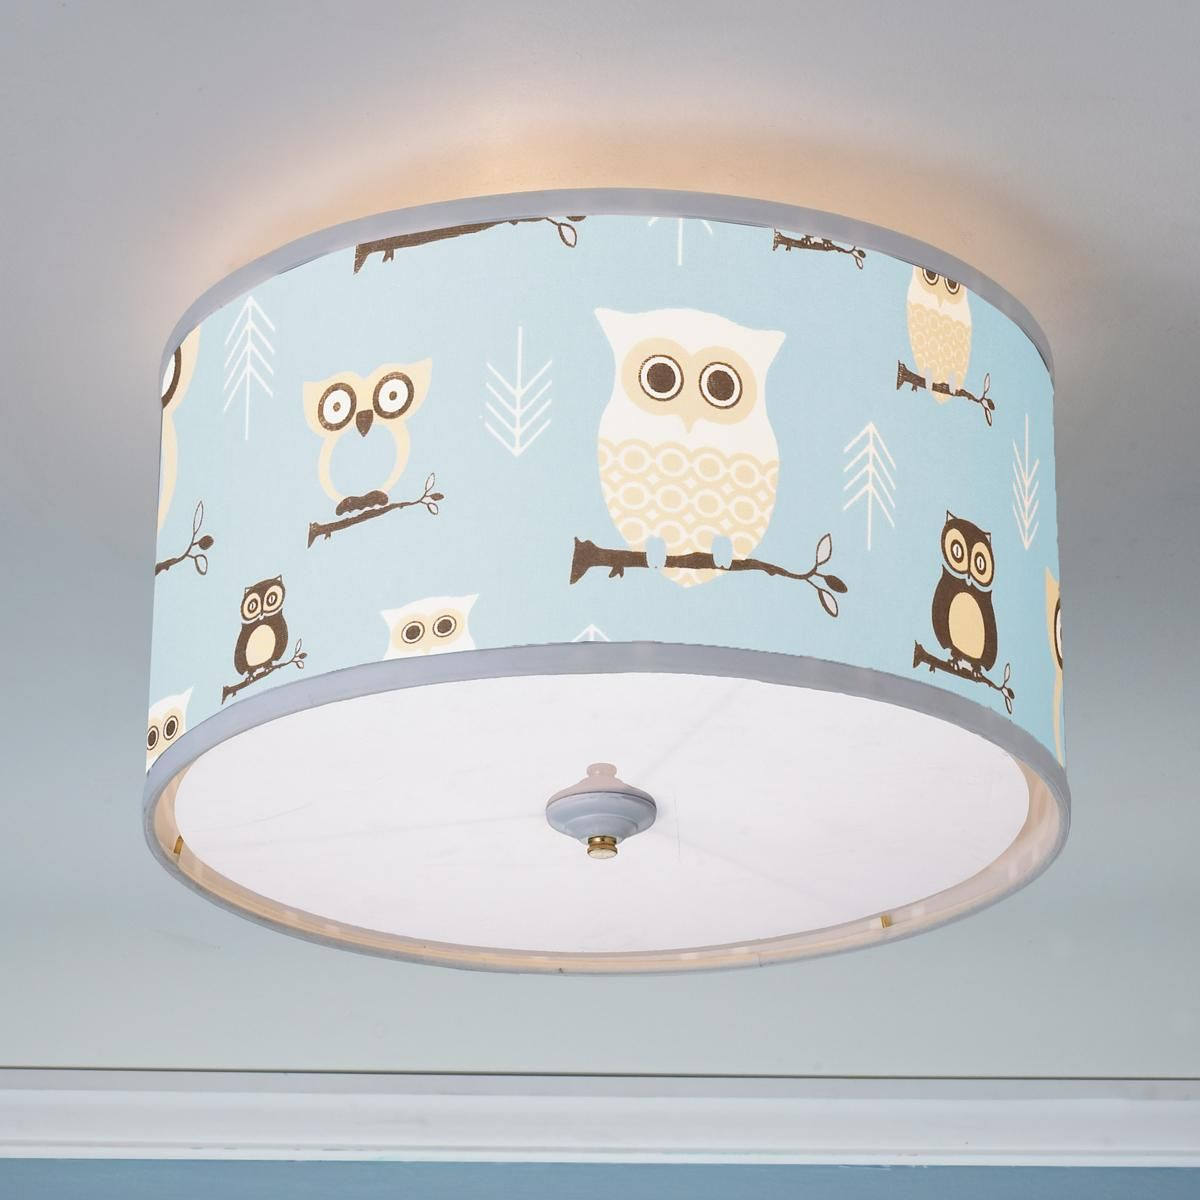 Owls Drum Shade Ceiling Light This owl drum shade ceiling light will make a  fun addition